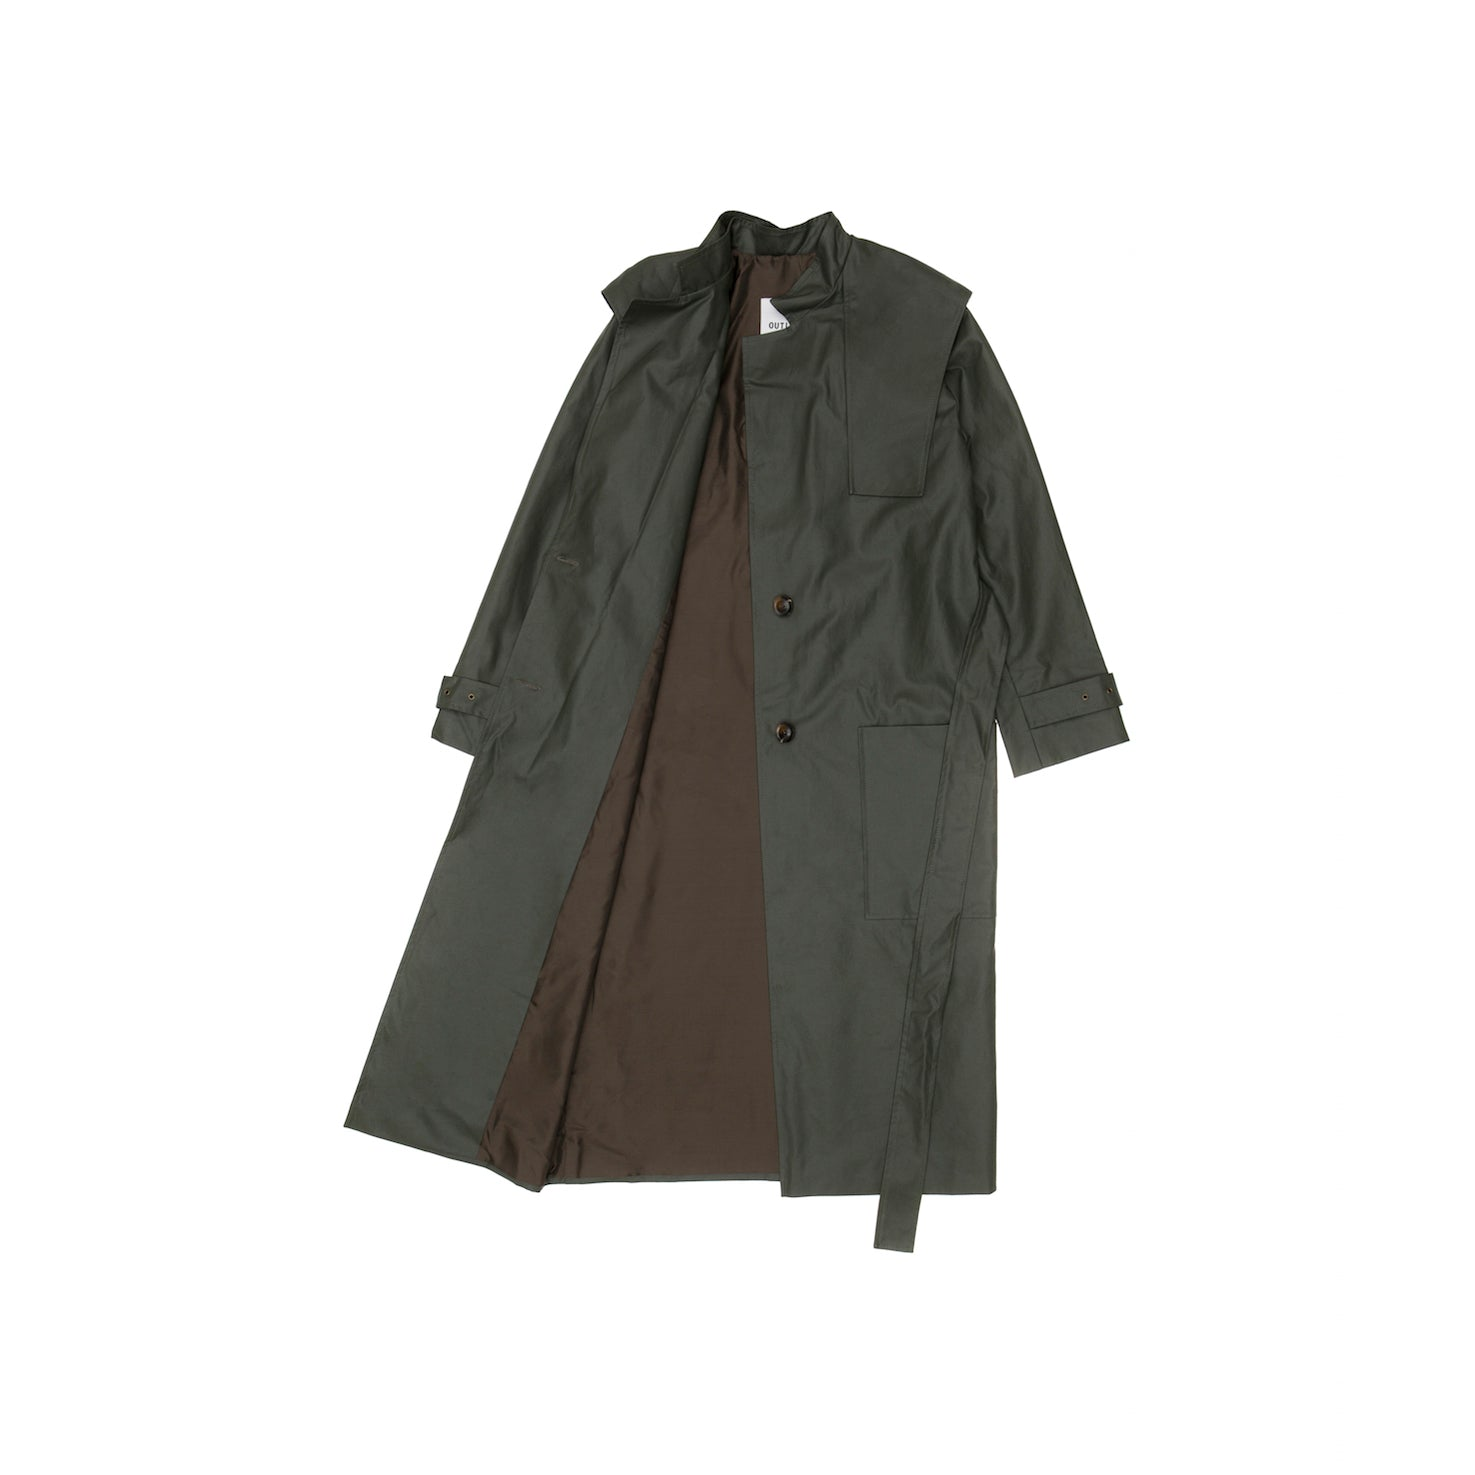 Olive military trench